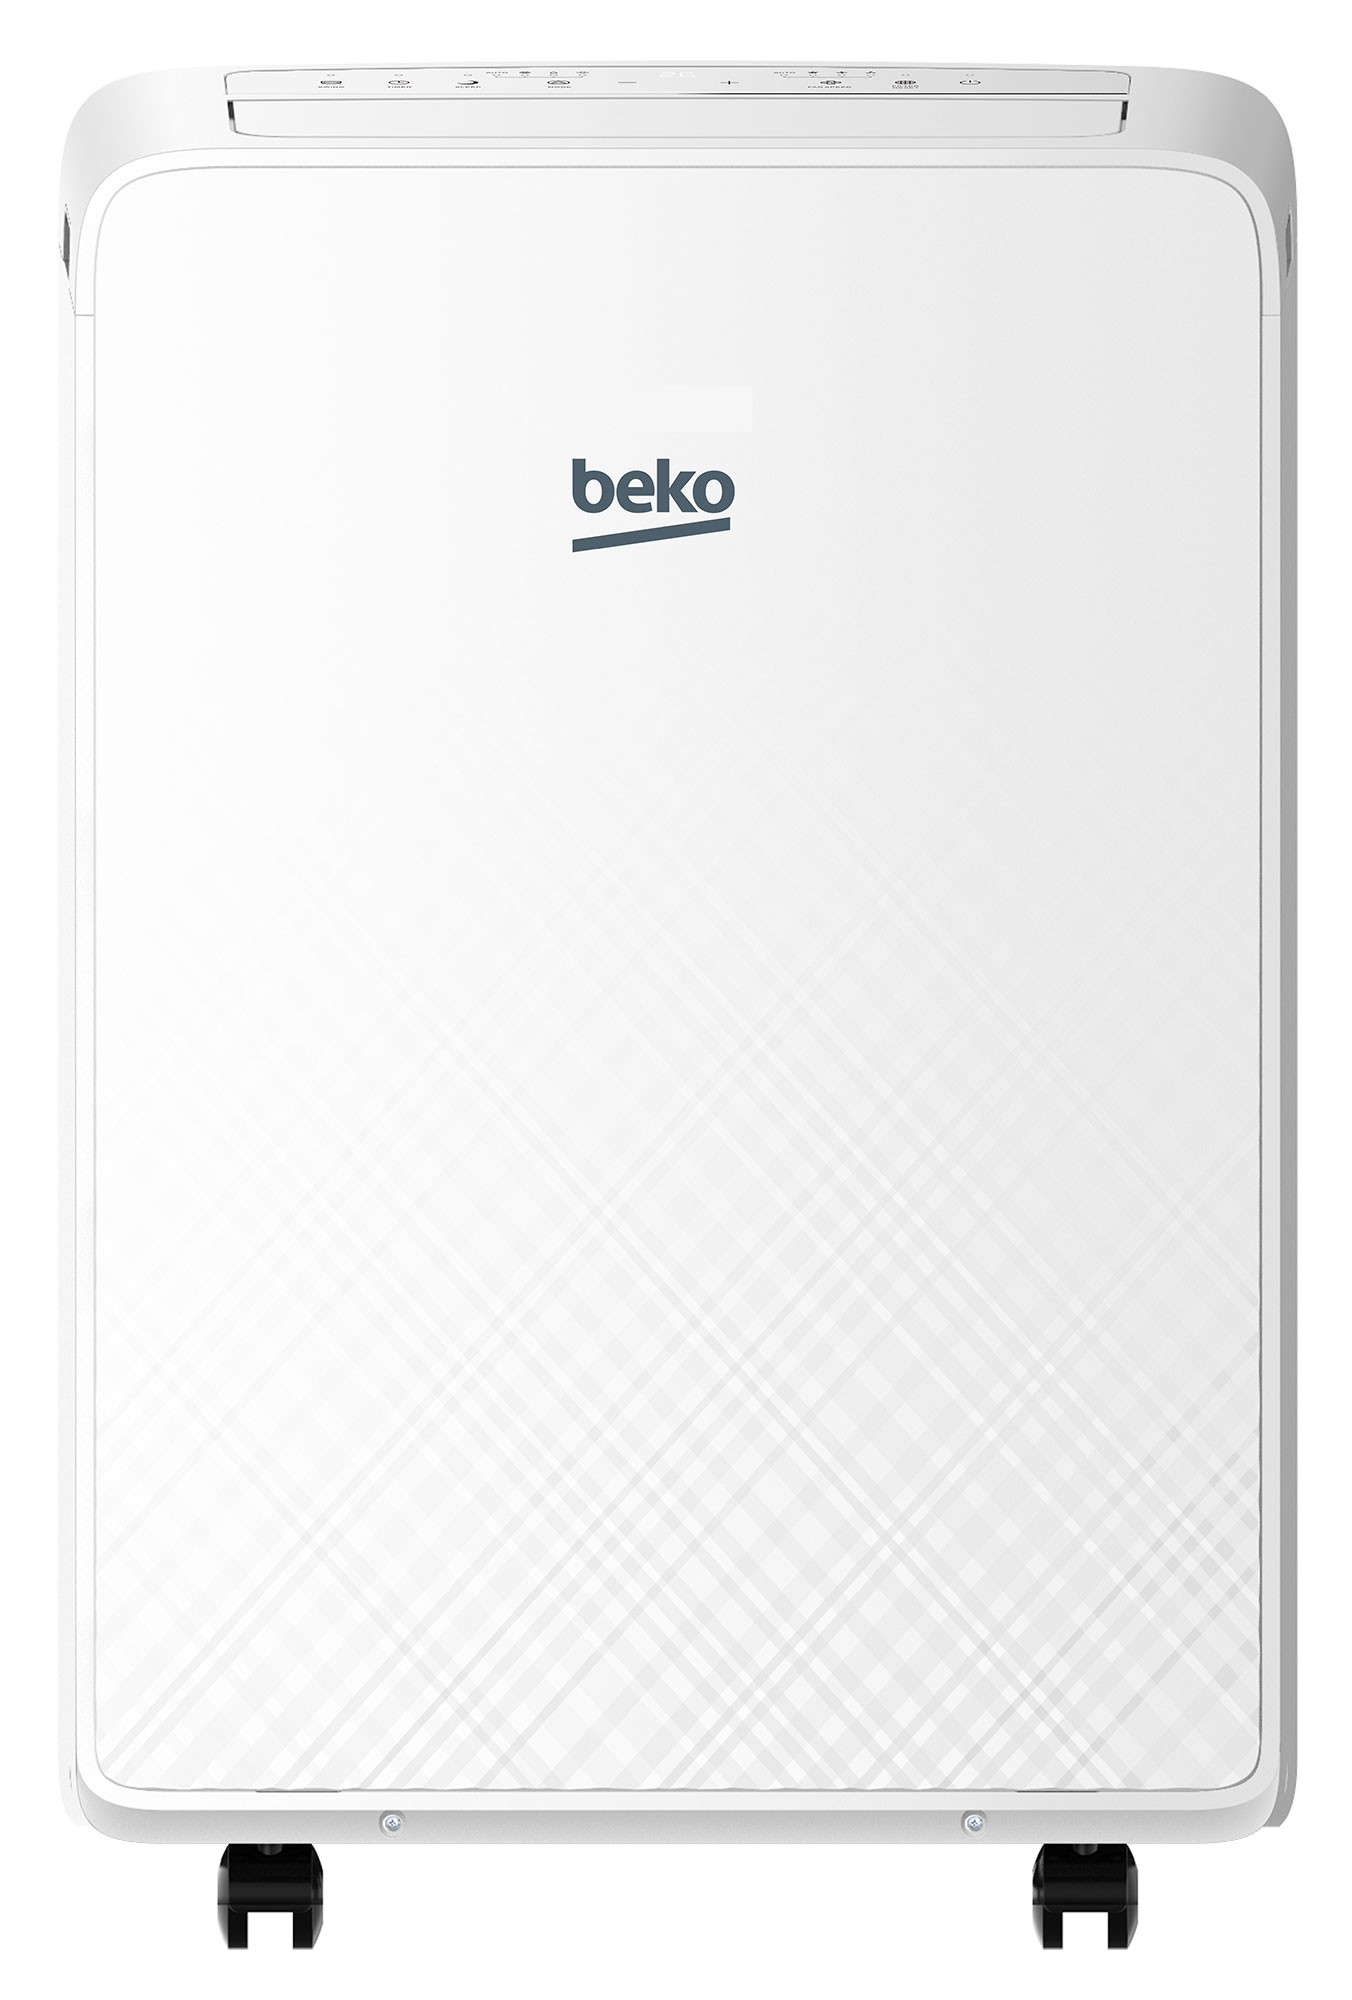 Aer conditionat portabil Beko BX109C